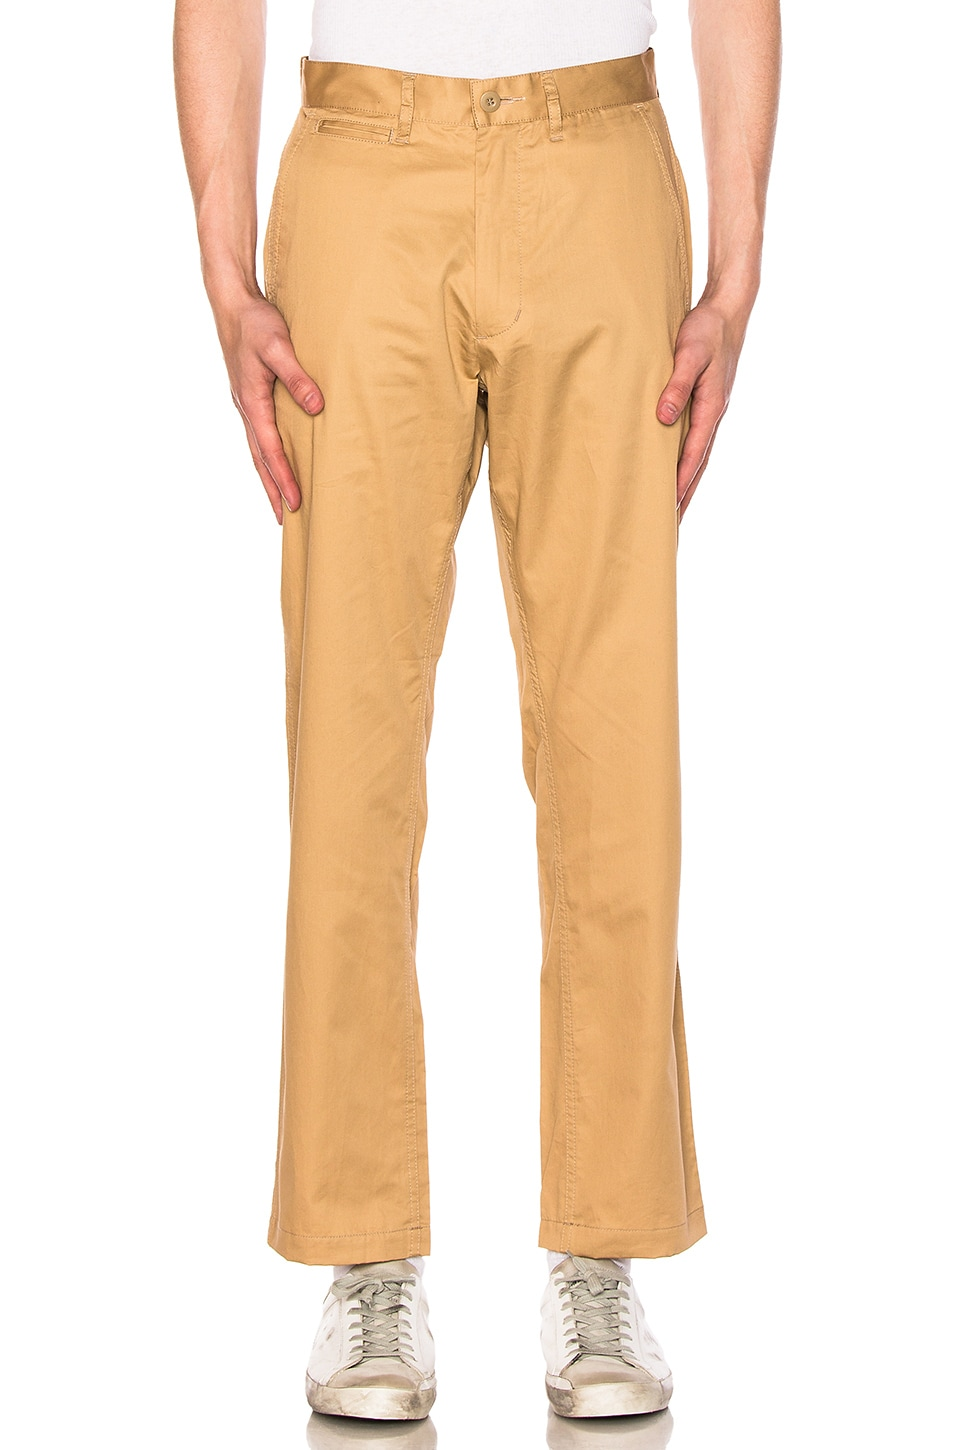 Chino Pants by CLOT